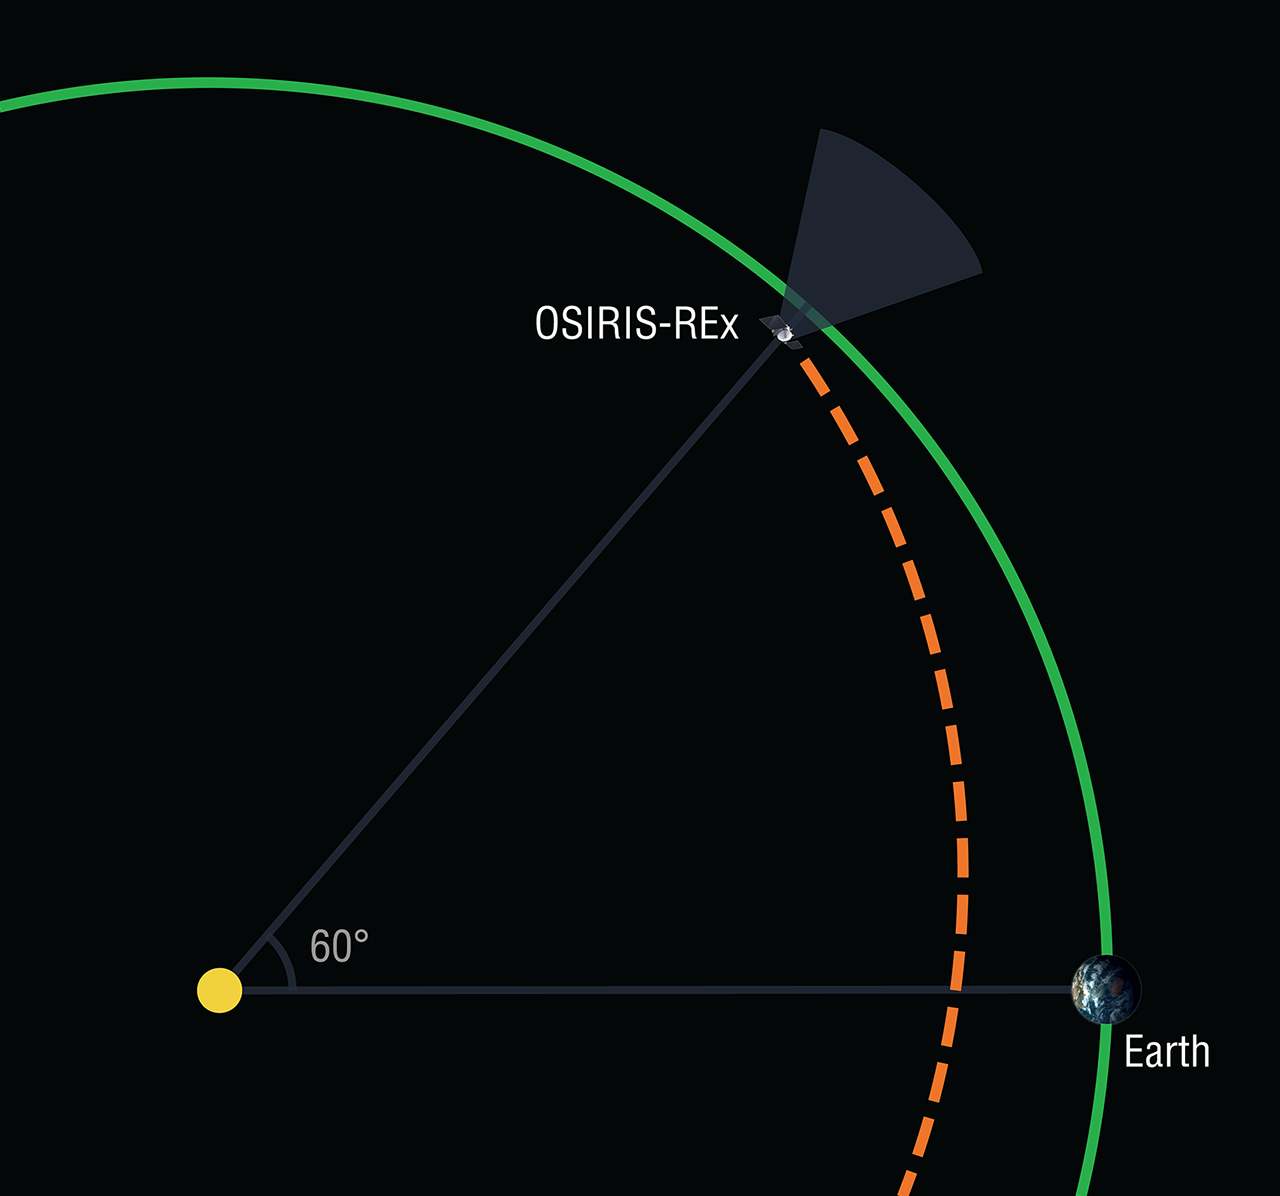 The trajectory of OSIRIS-REx as we pass through the Earth-Sun L4 region.